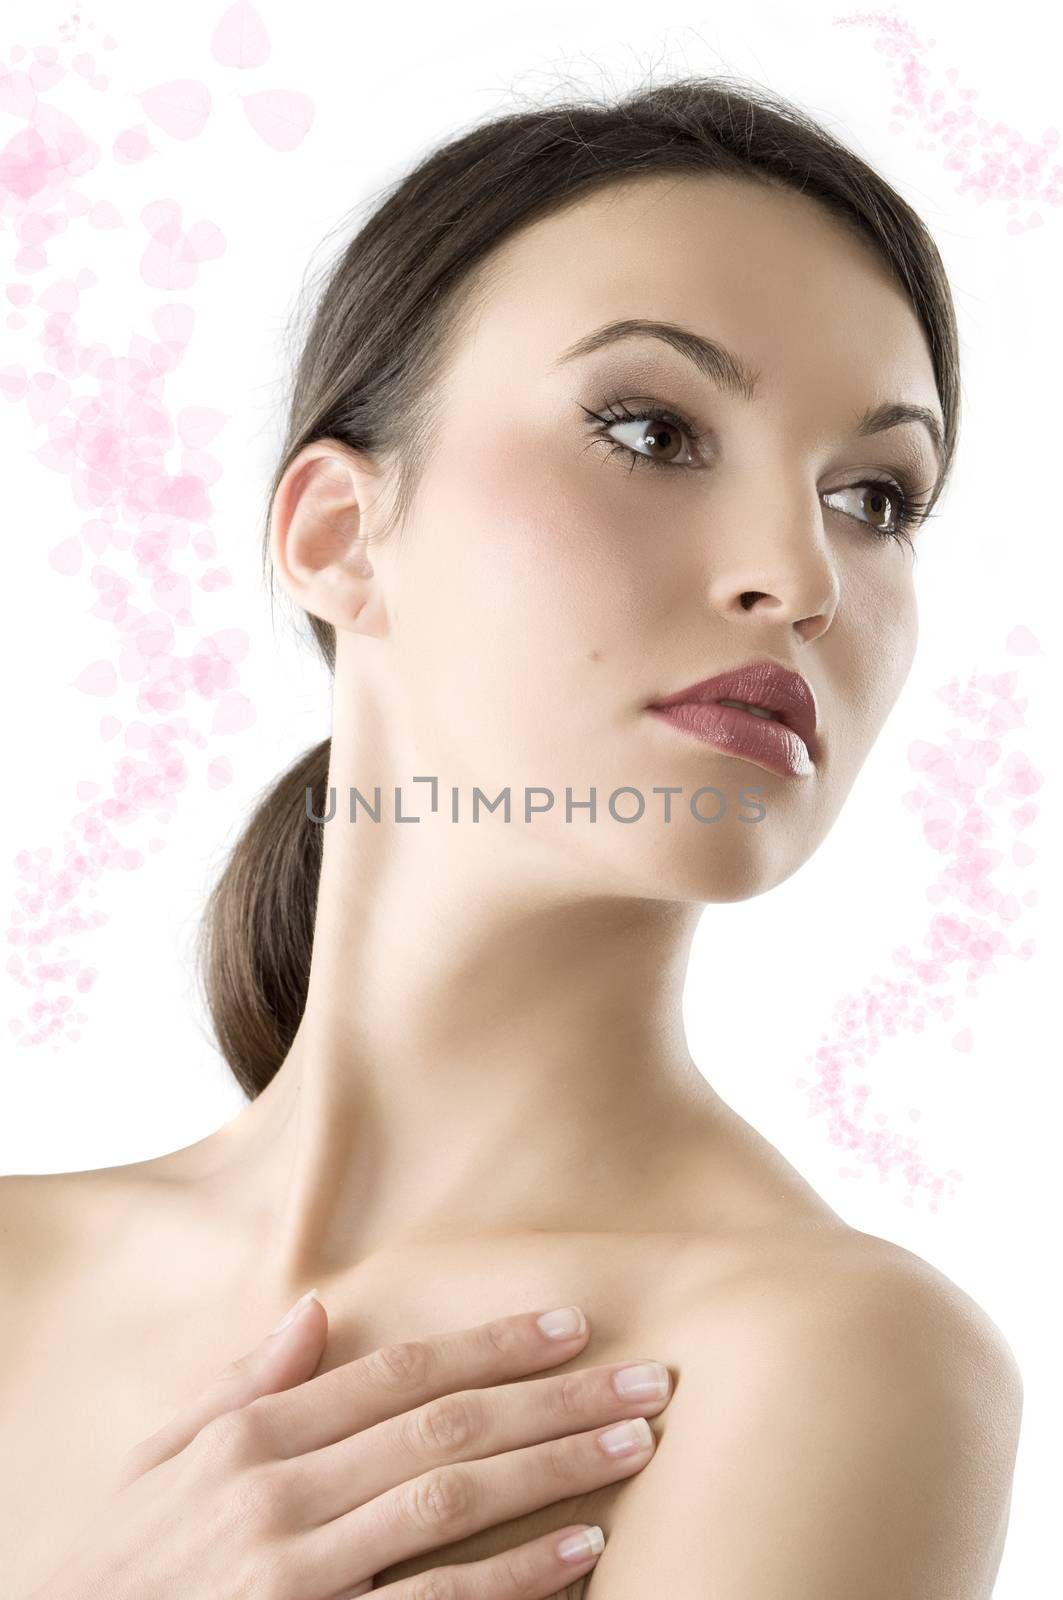 portrait of a young and beautiful brunette with natural makeup looking over